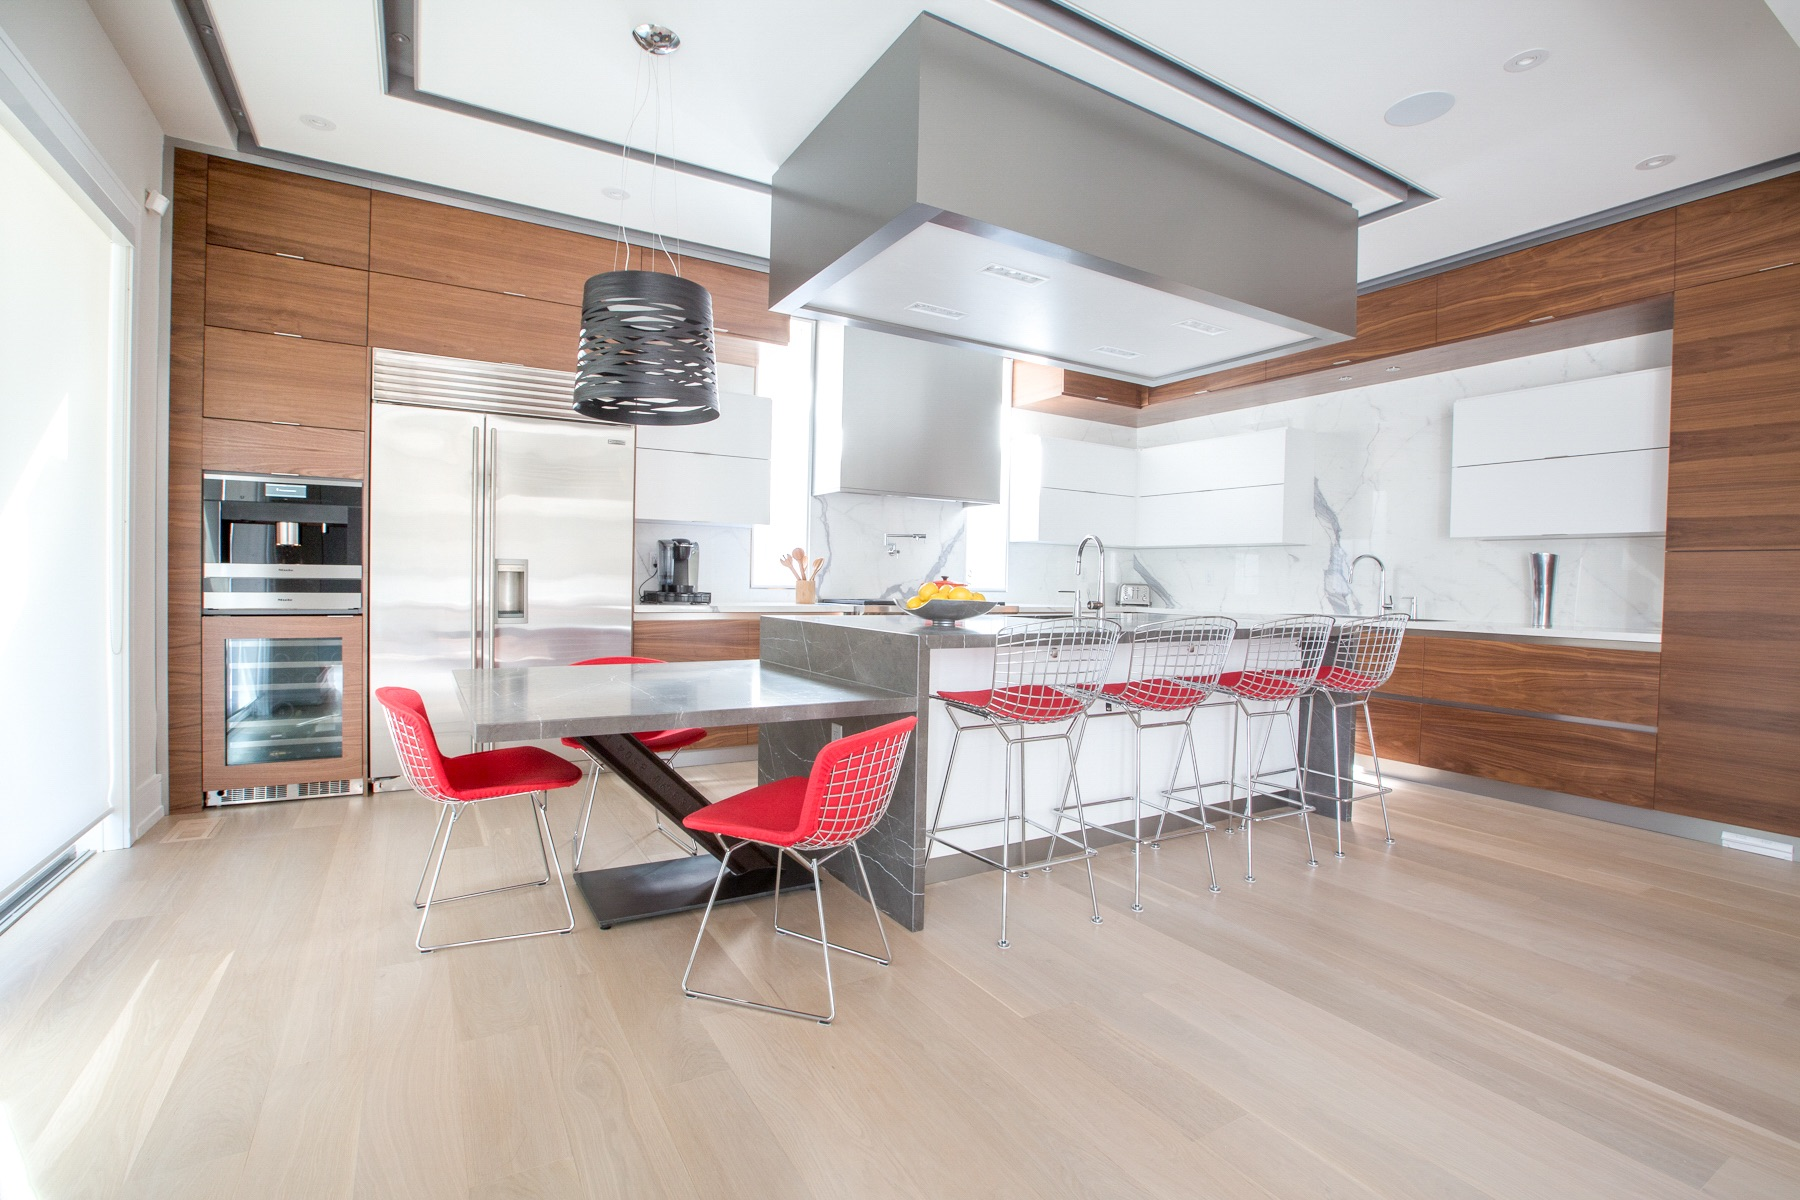 wood contemporary kitchen with red chairs